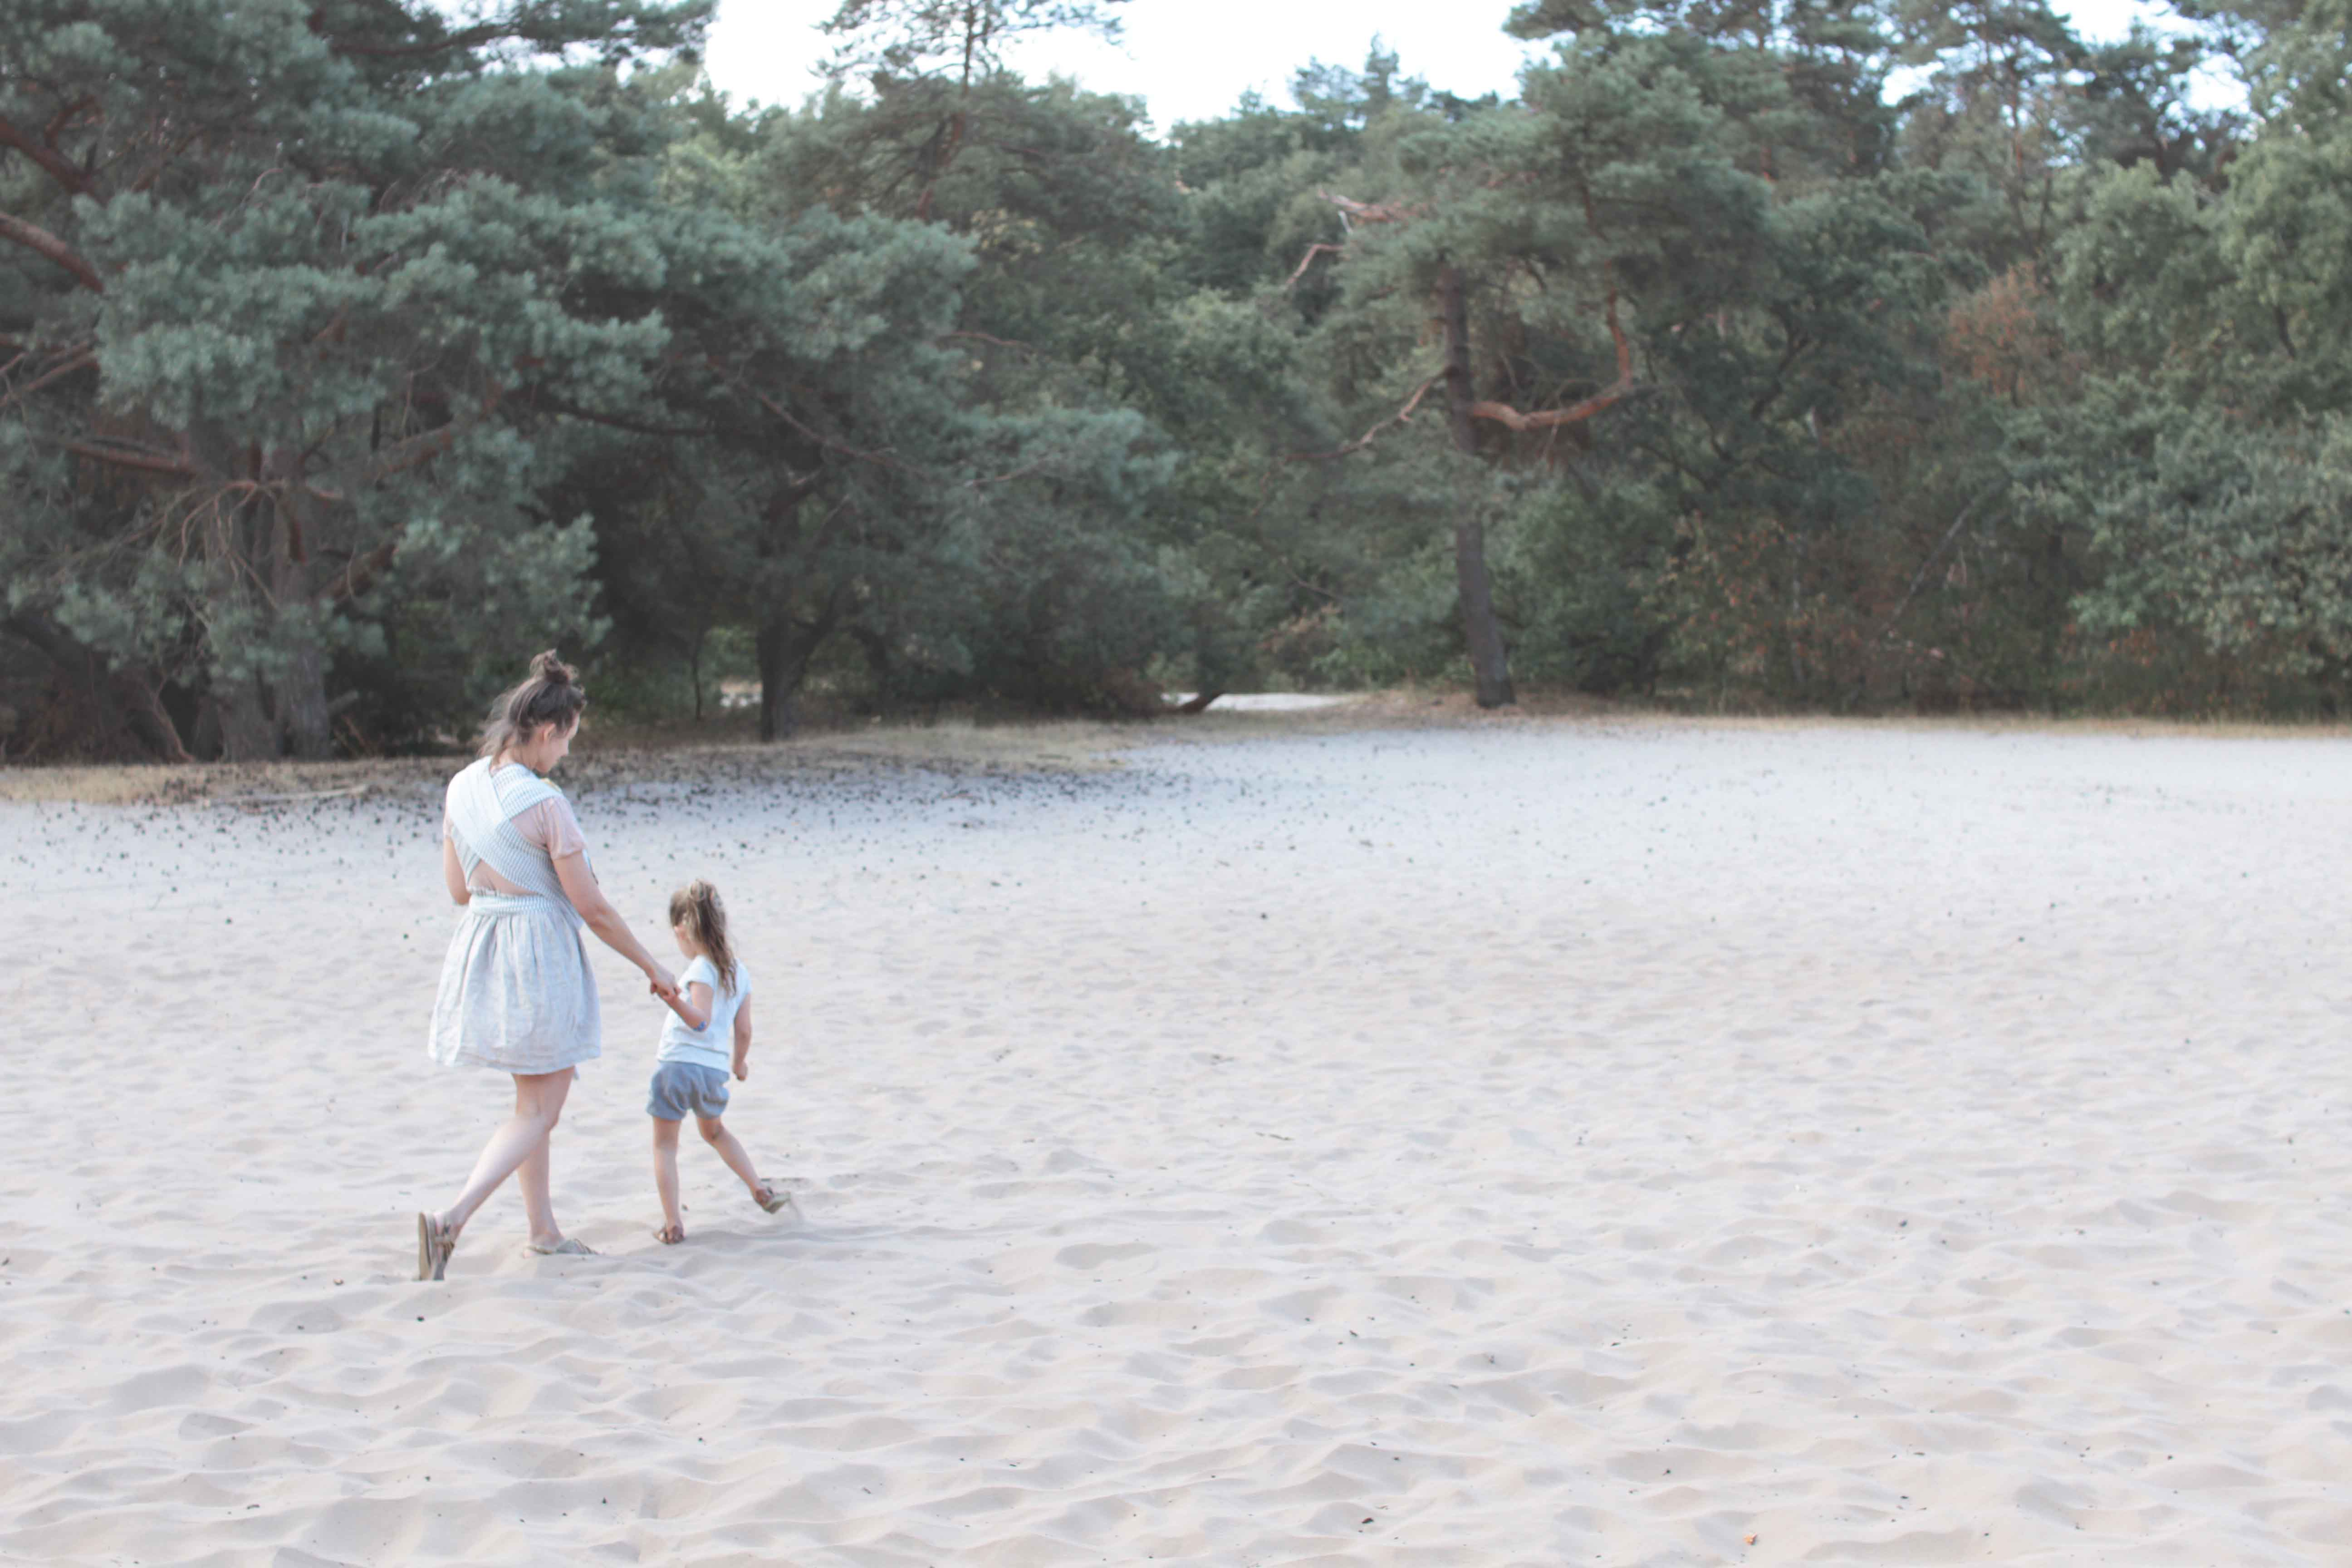 natural mama with child in woods lifestylefotografie lifestylephotography by kyra de vreeze